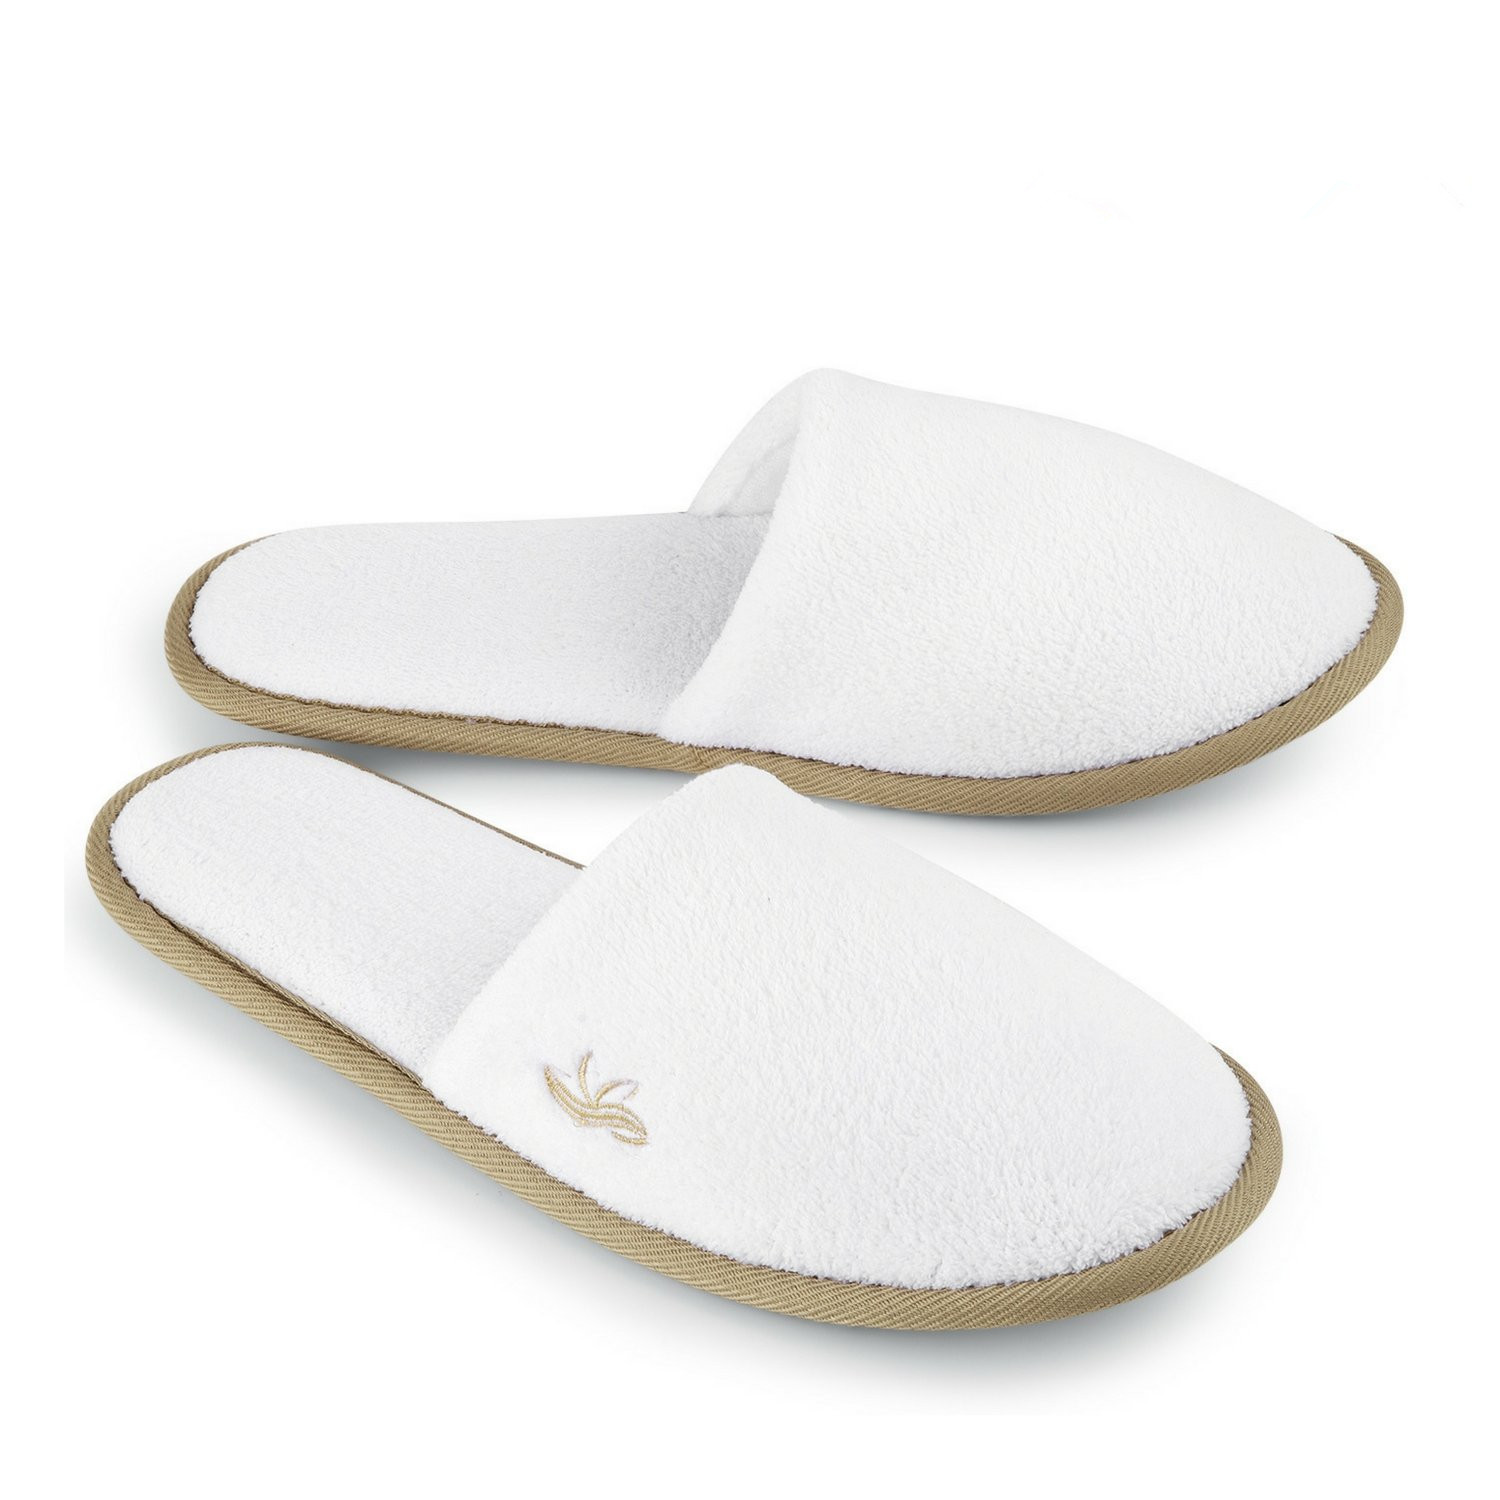 Spa Slippers Closed Toe, Disposable Indoor Coral fleece Hotel Slippers